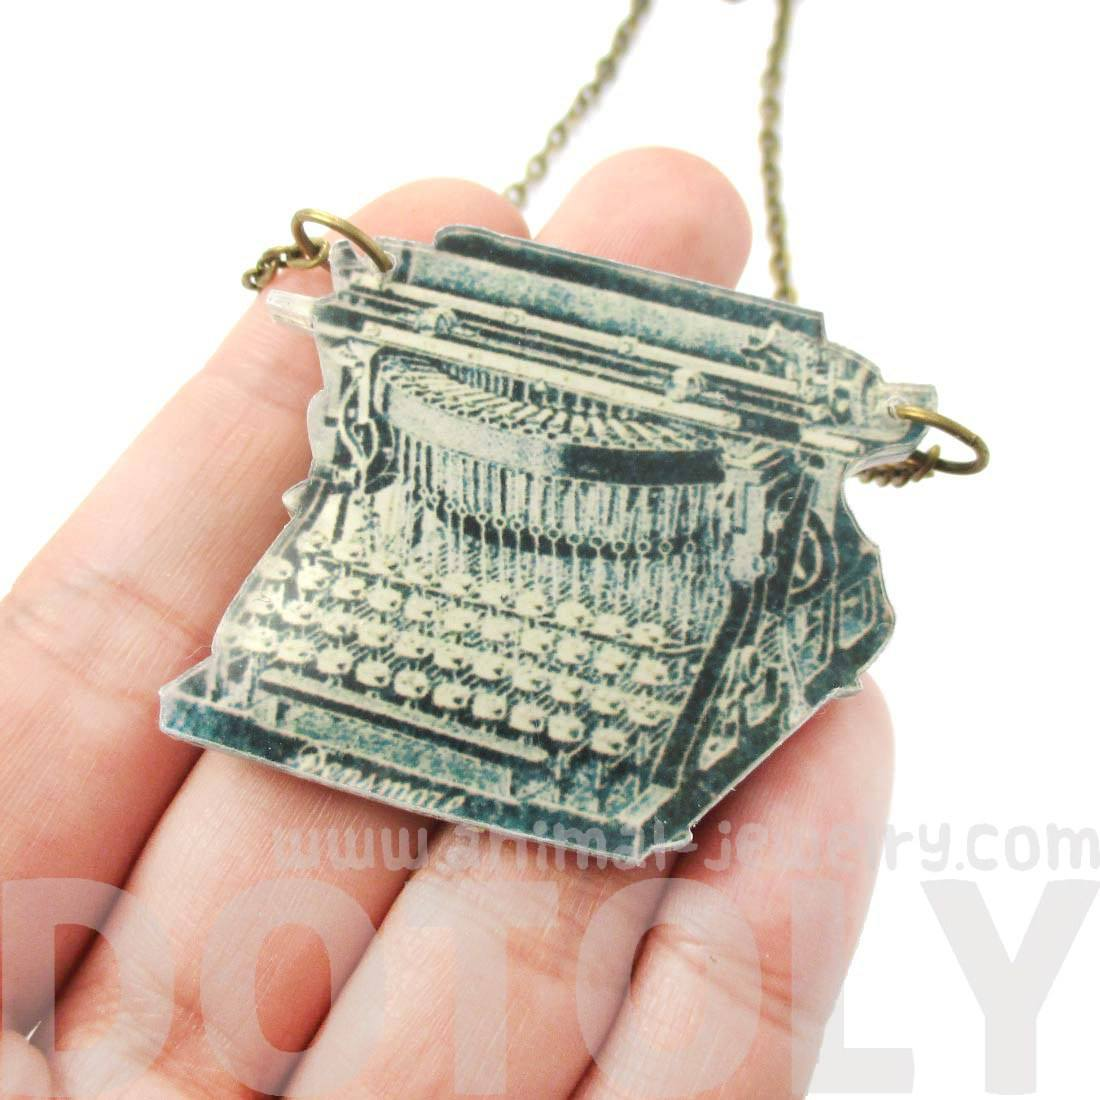 Antique Typewriter Shaped Acrylic Illustrated Pendant Necklace